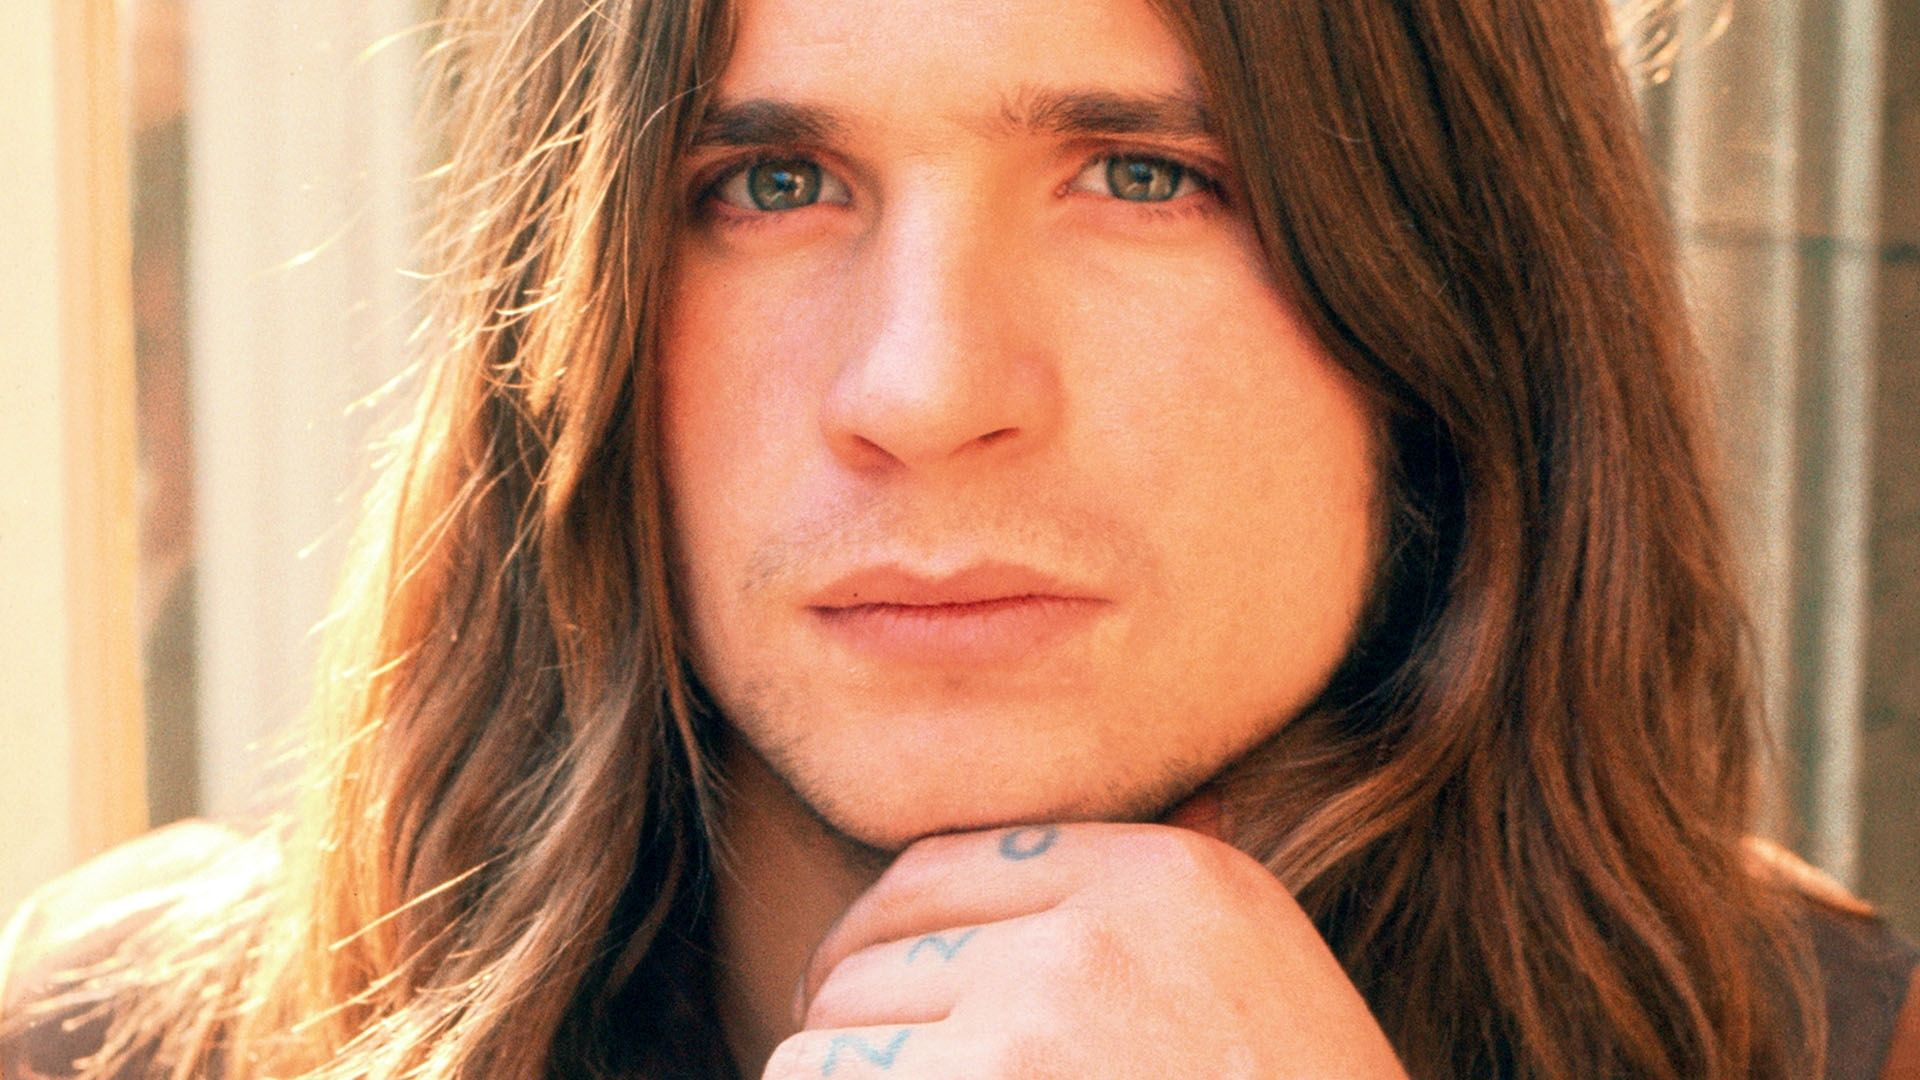 young ozzy osbourne!! Whaaat?? He's actually handsome in